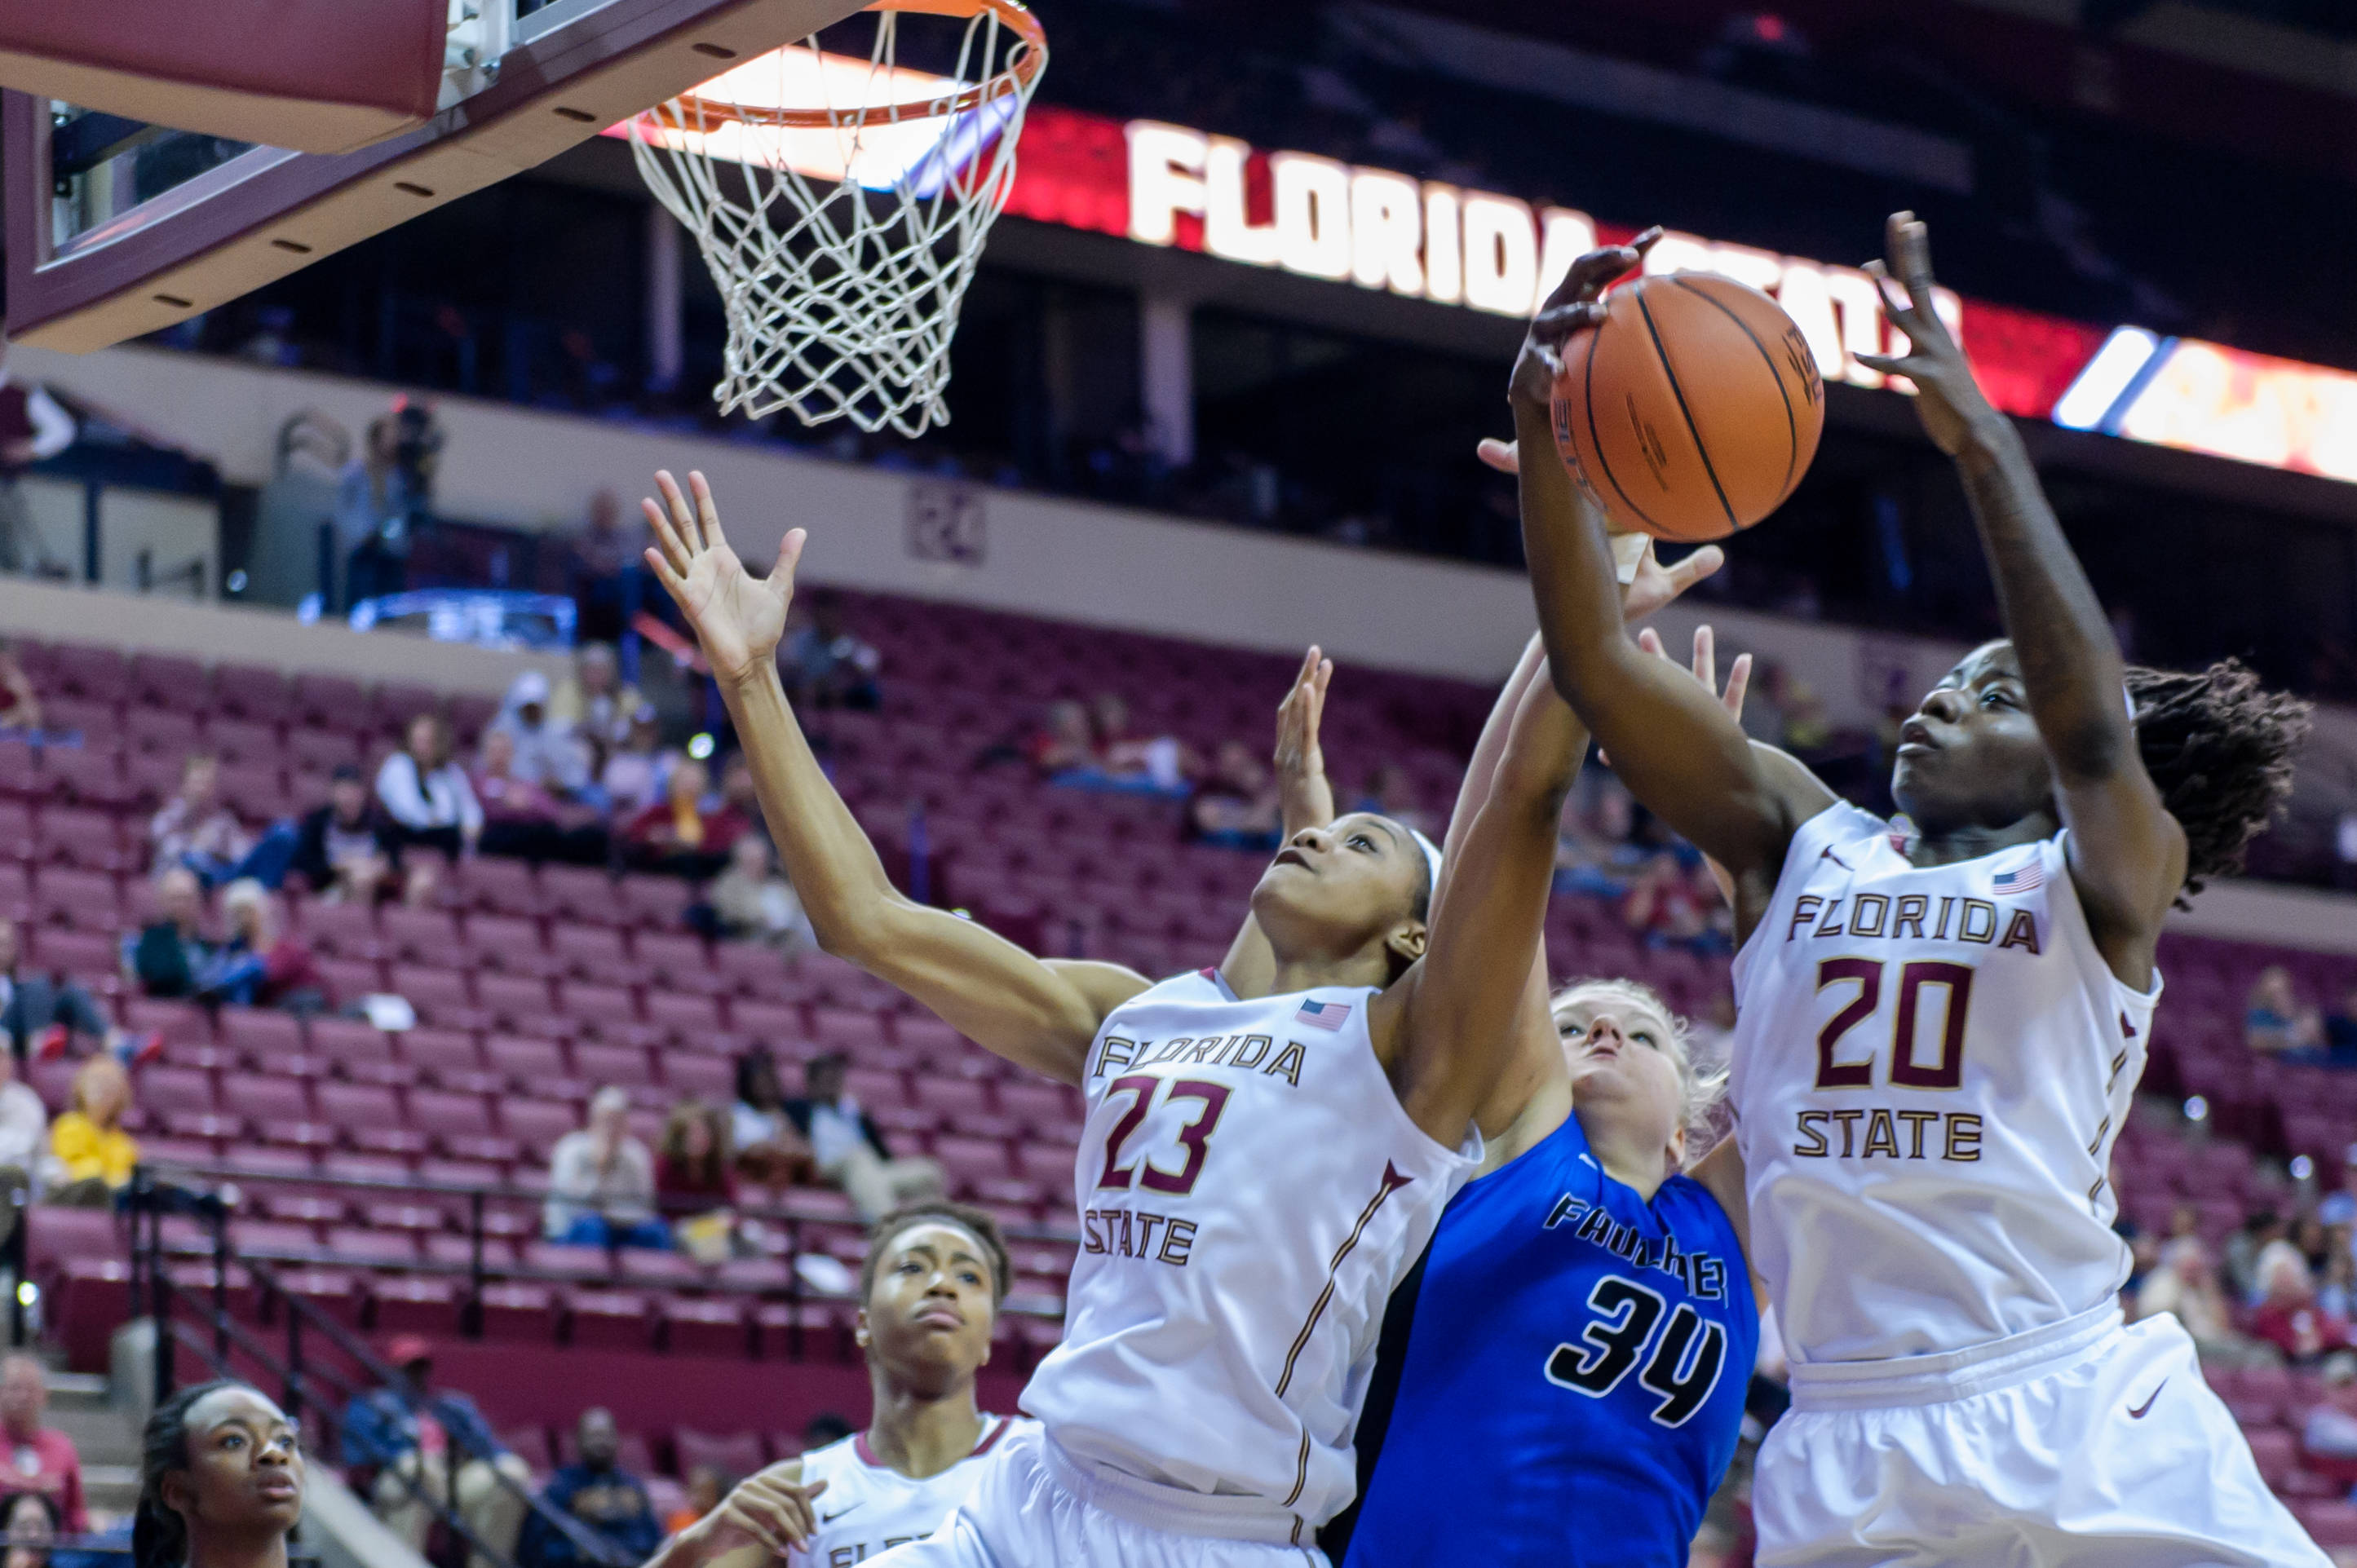 More FSU-Faulkner Photos